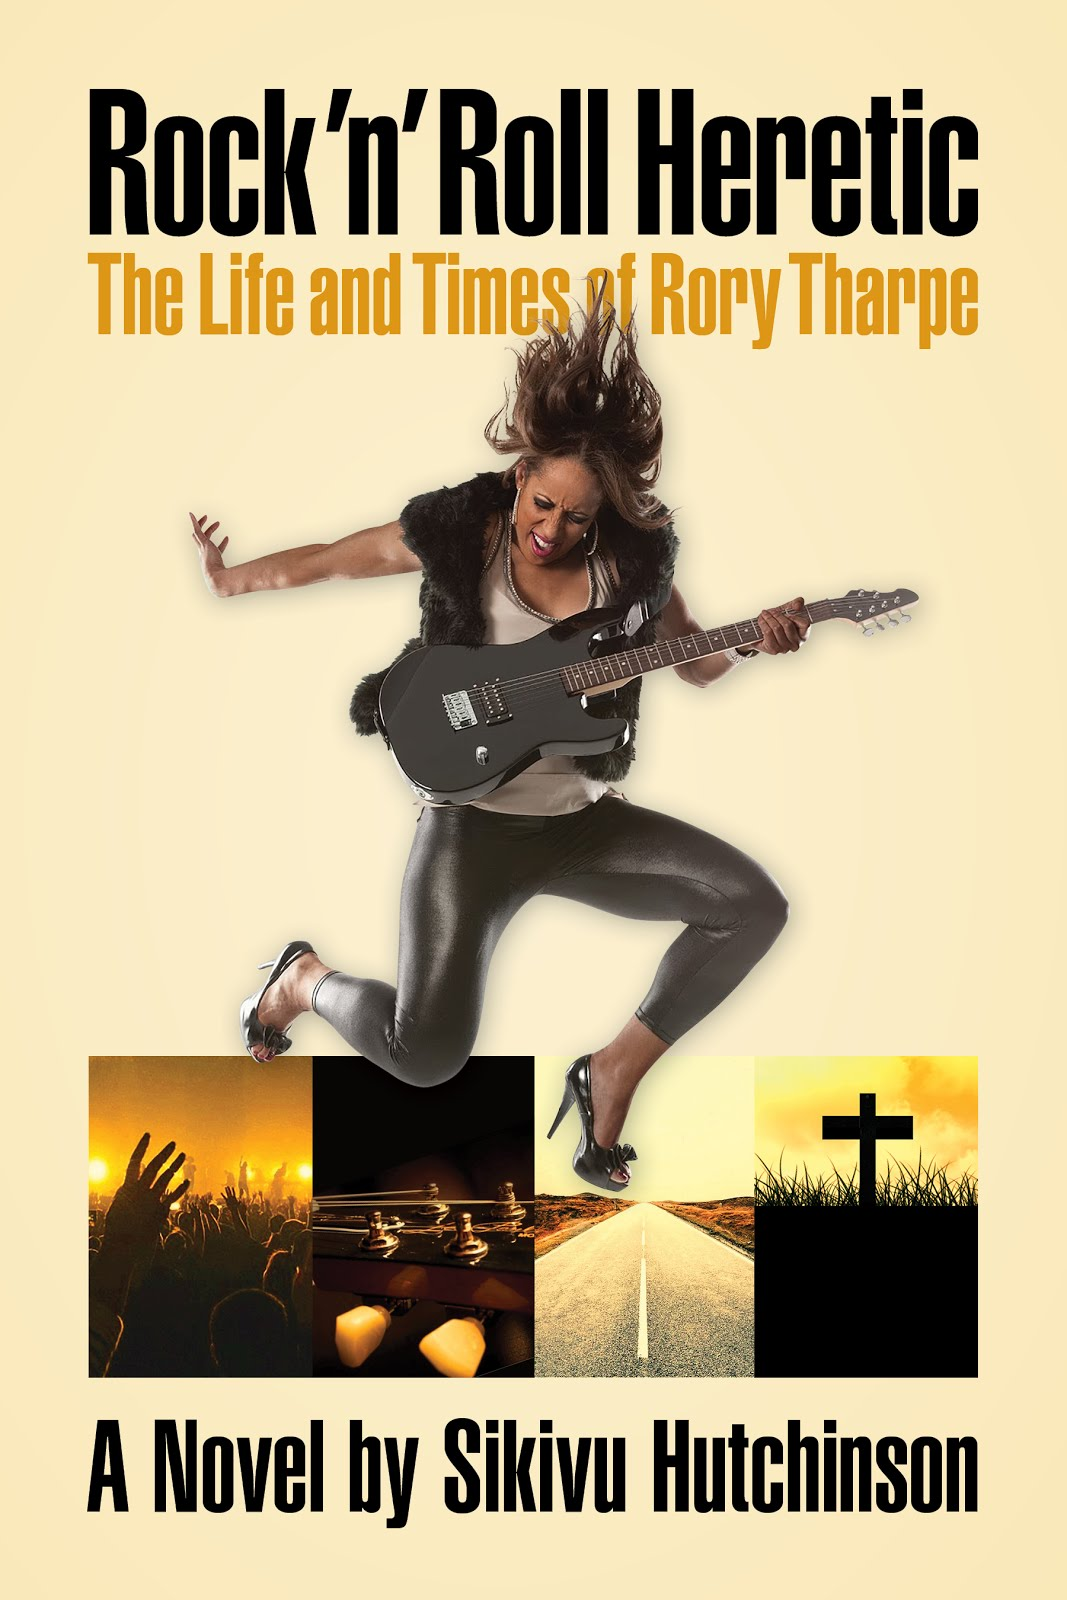 Rock 'n' Roll Heretic: The Life and Times of Rory Tharpe